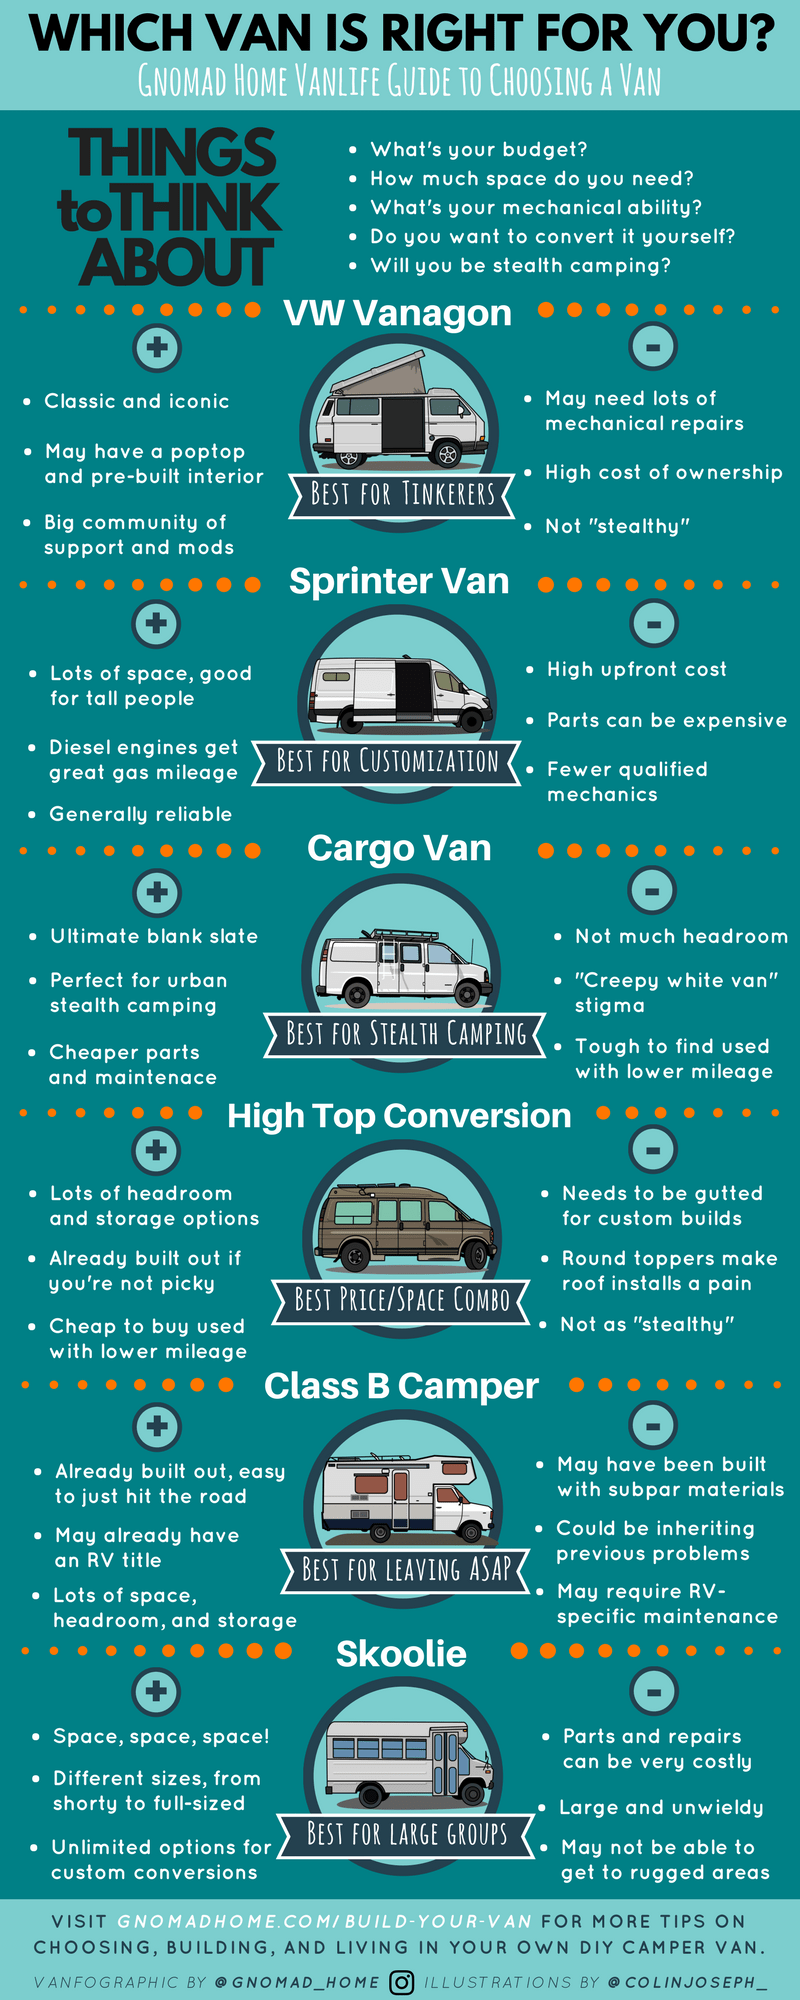 c4386924a4 Choosing Your Van for a DIY Campervan Conversion - Best Vans to Live In and  Build